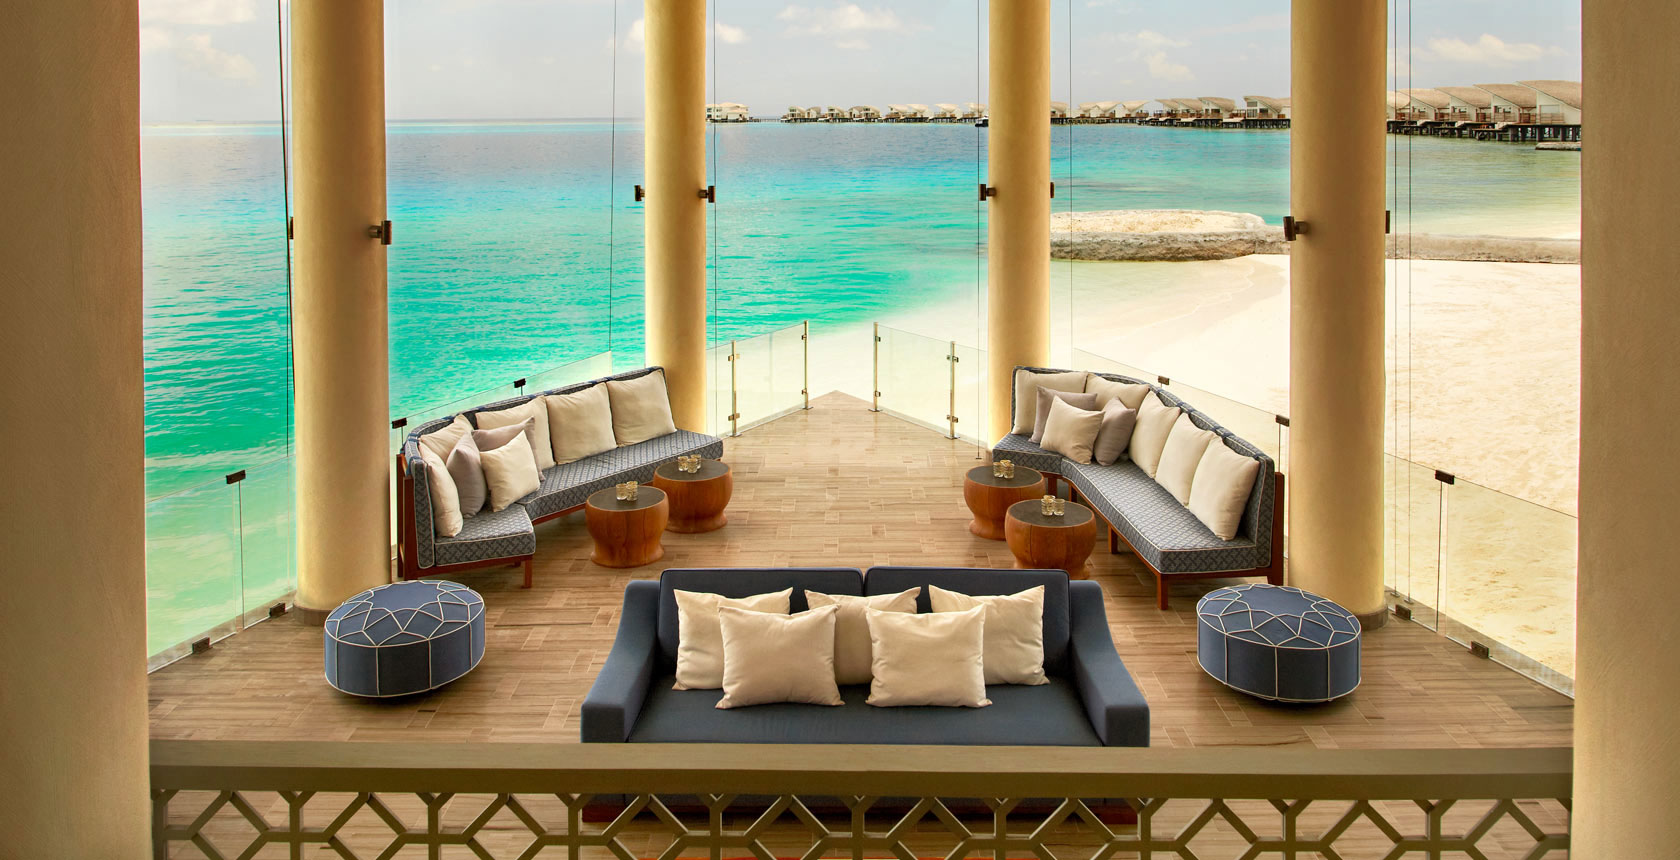 Viceroy-Hotel-Sand-Resort-33